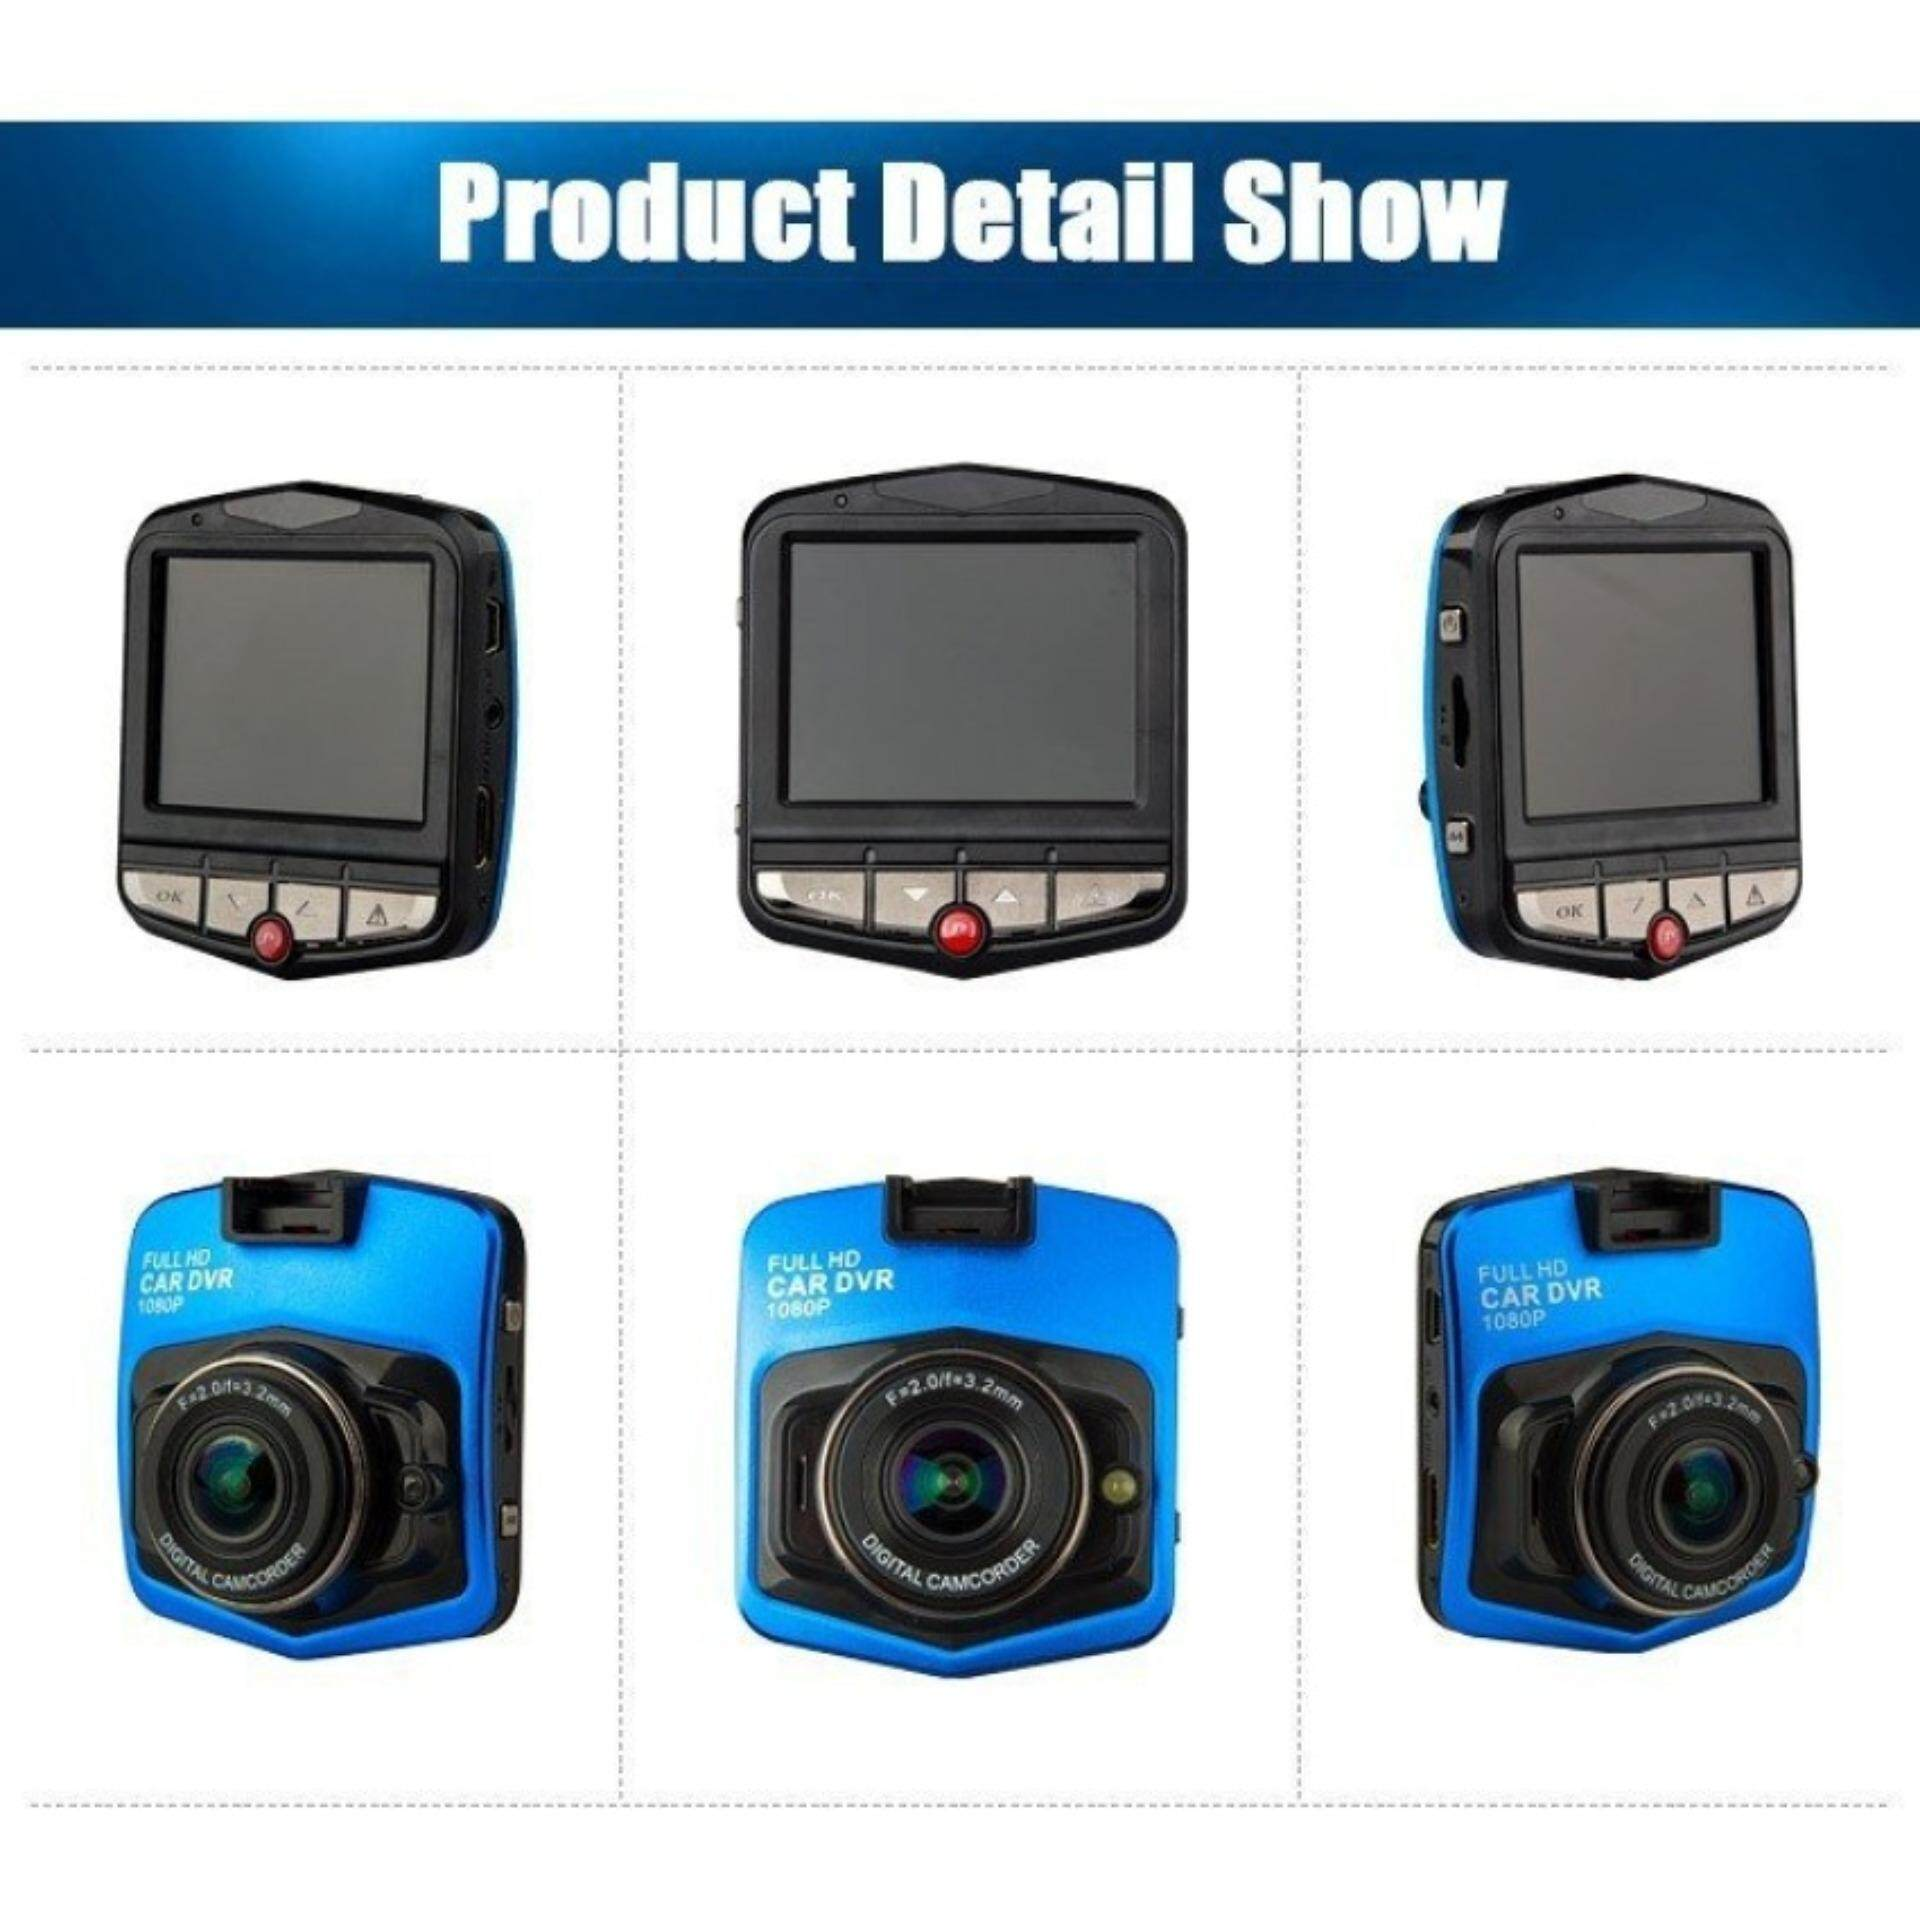 Mini Car DVR Camera T-630 HD Camcorder Registrator Parking Recorder G-sensor Night Vision Dash Cam